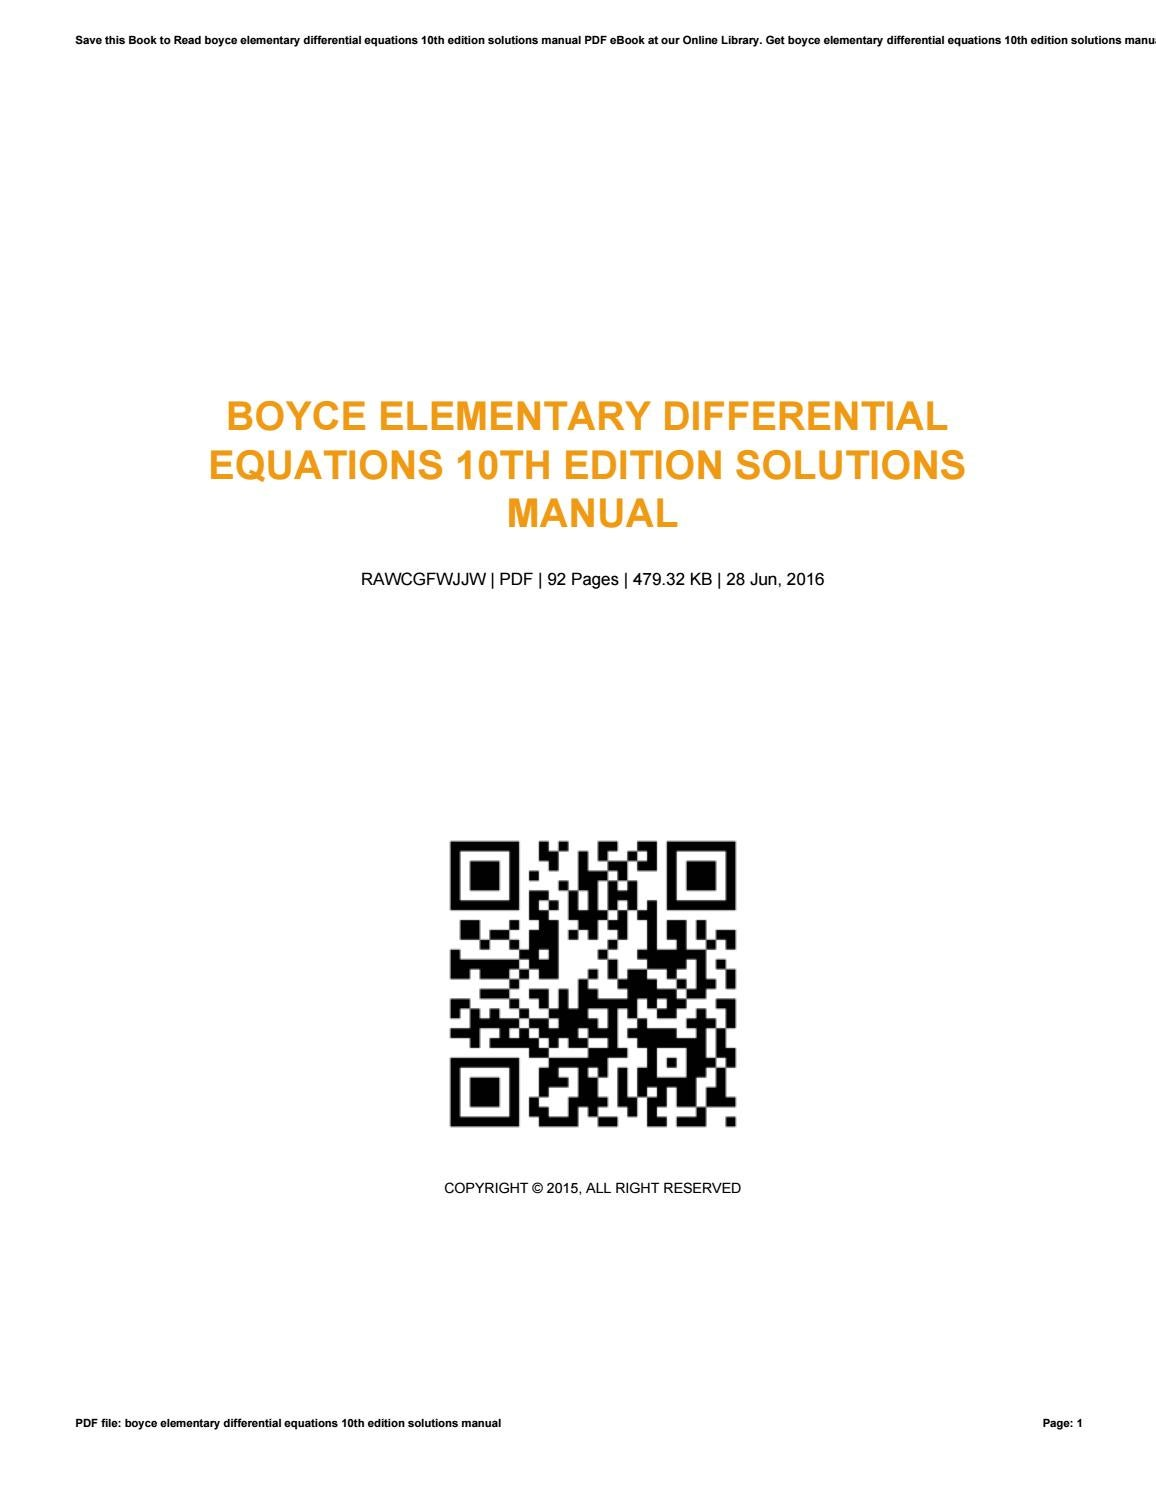 elementary differential equations boyce 10th edition solutions manual pdf